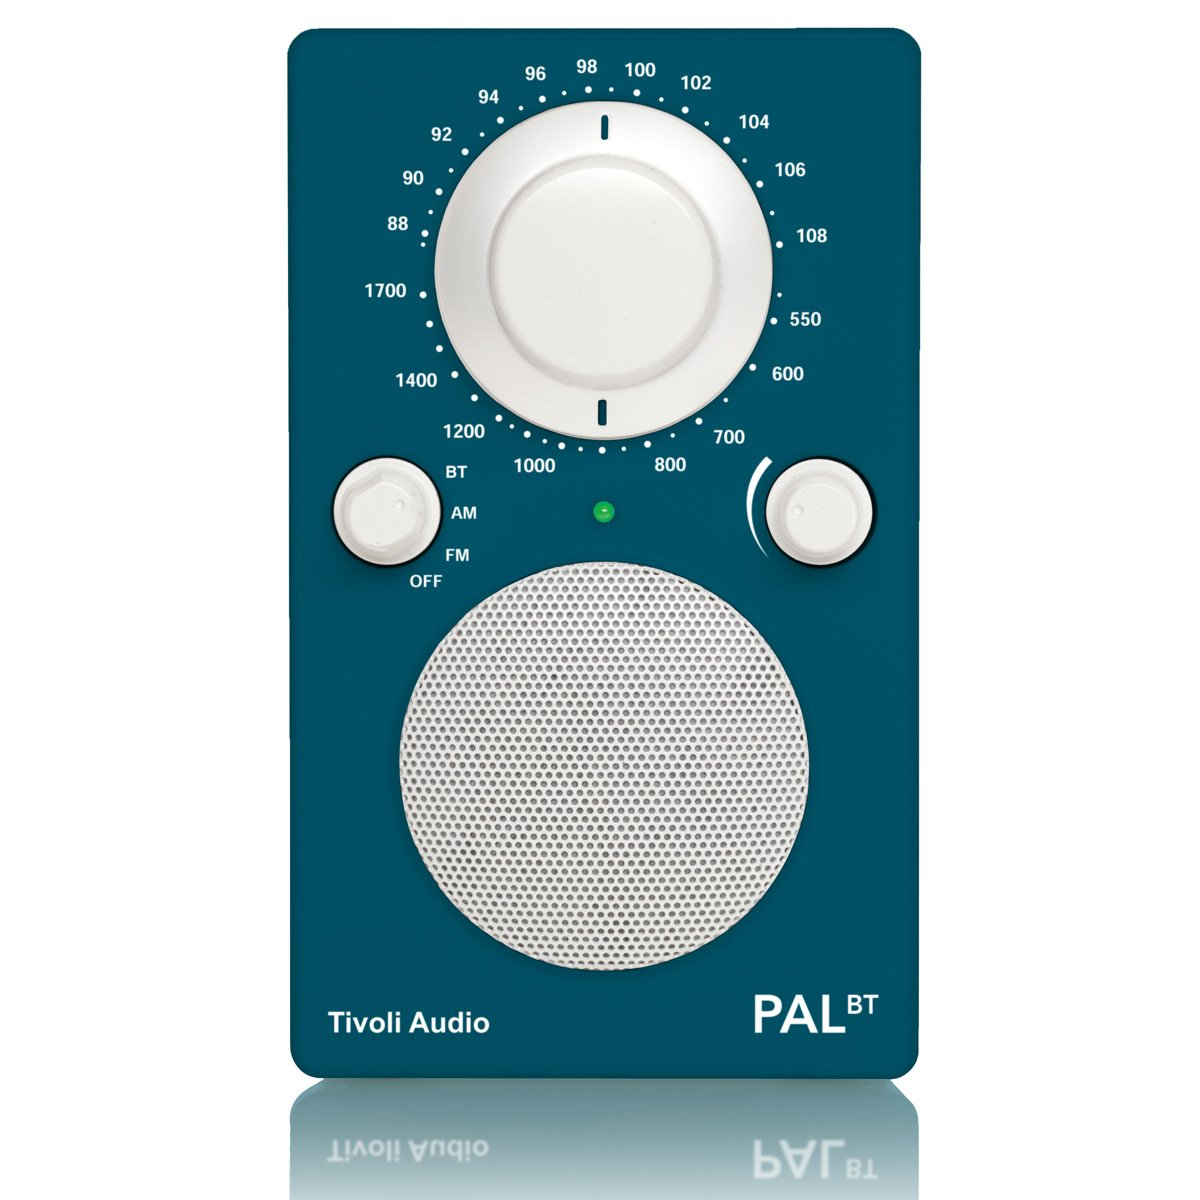 Tivoli PALBT Portable Audio Laboratory AM/FM Radio with Bluetooth - Deep Ocean Teal PALBTDOT